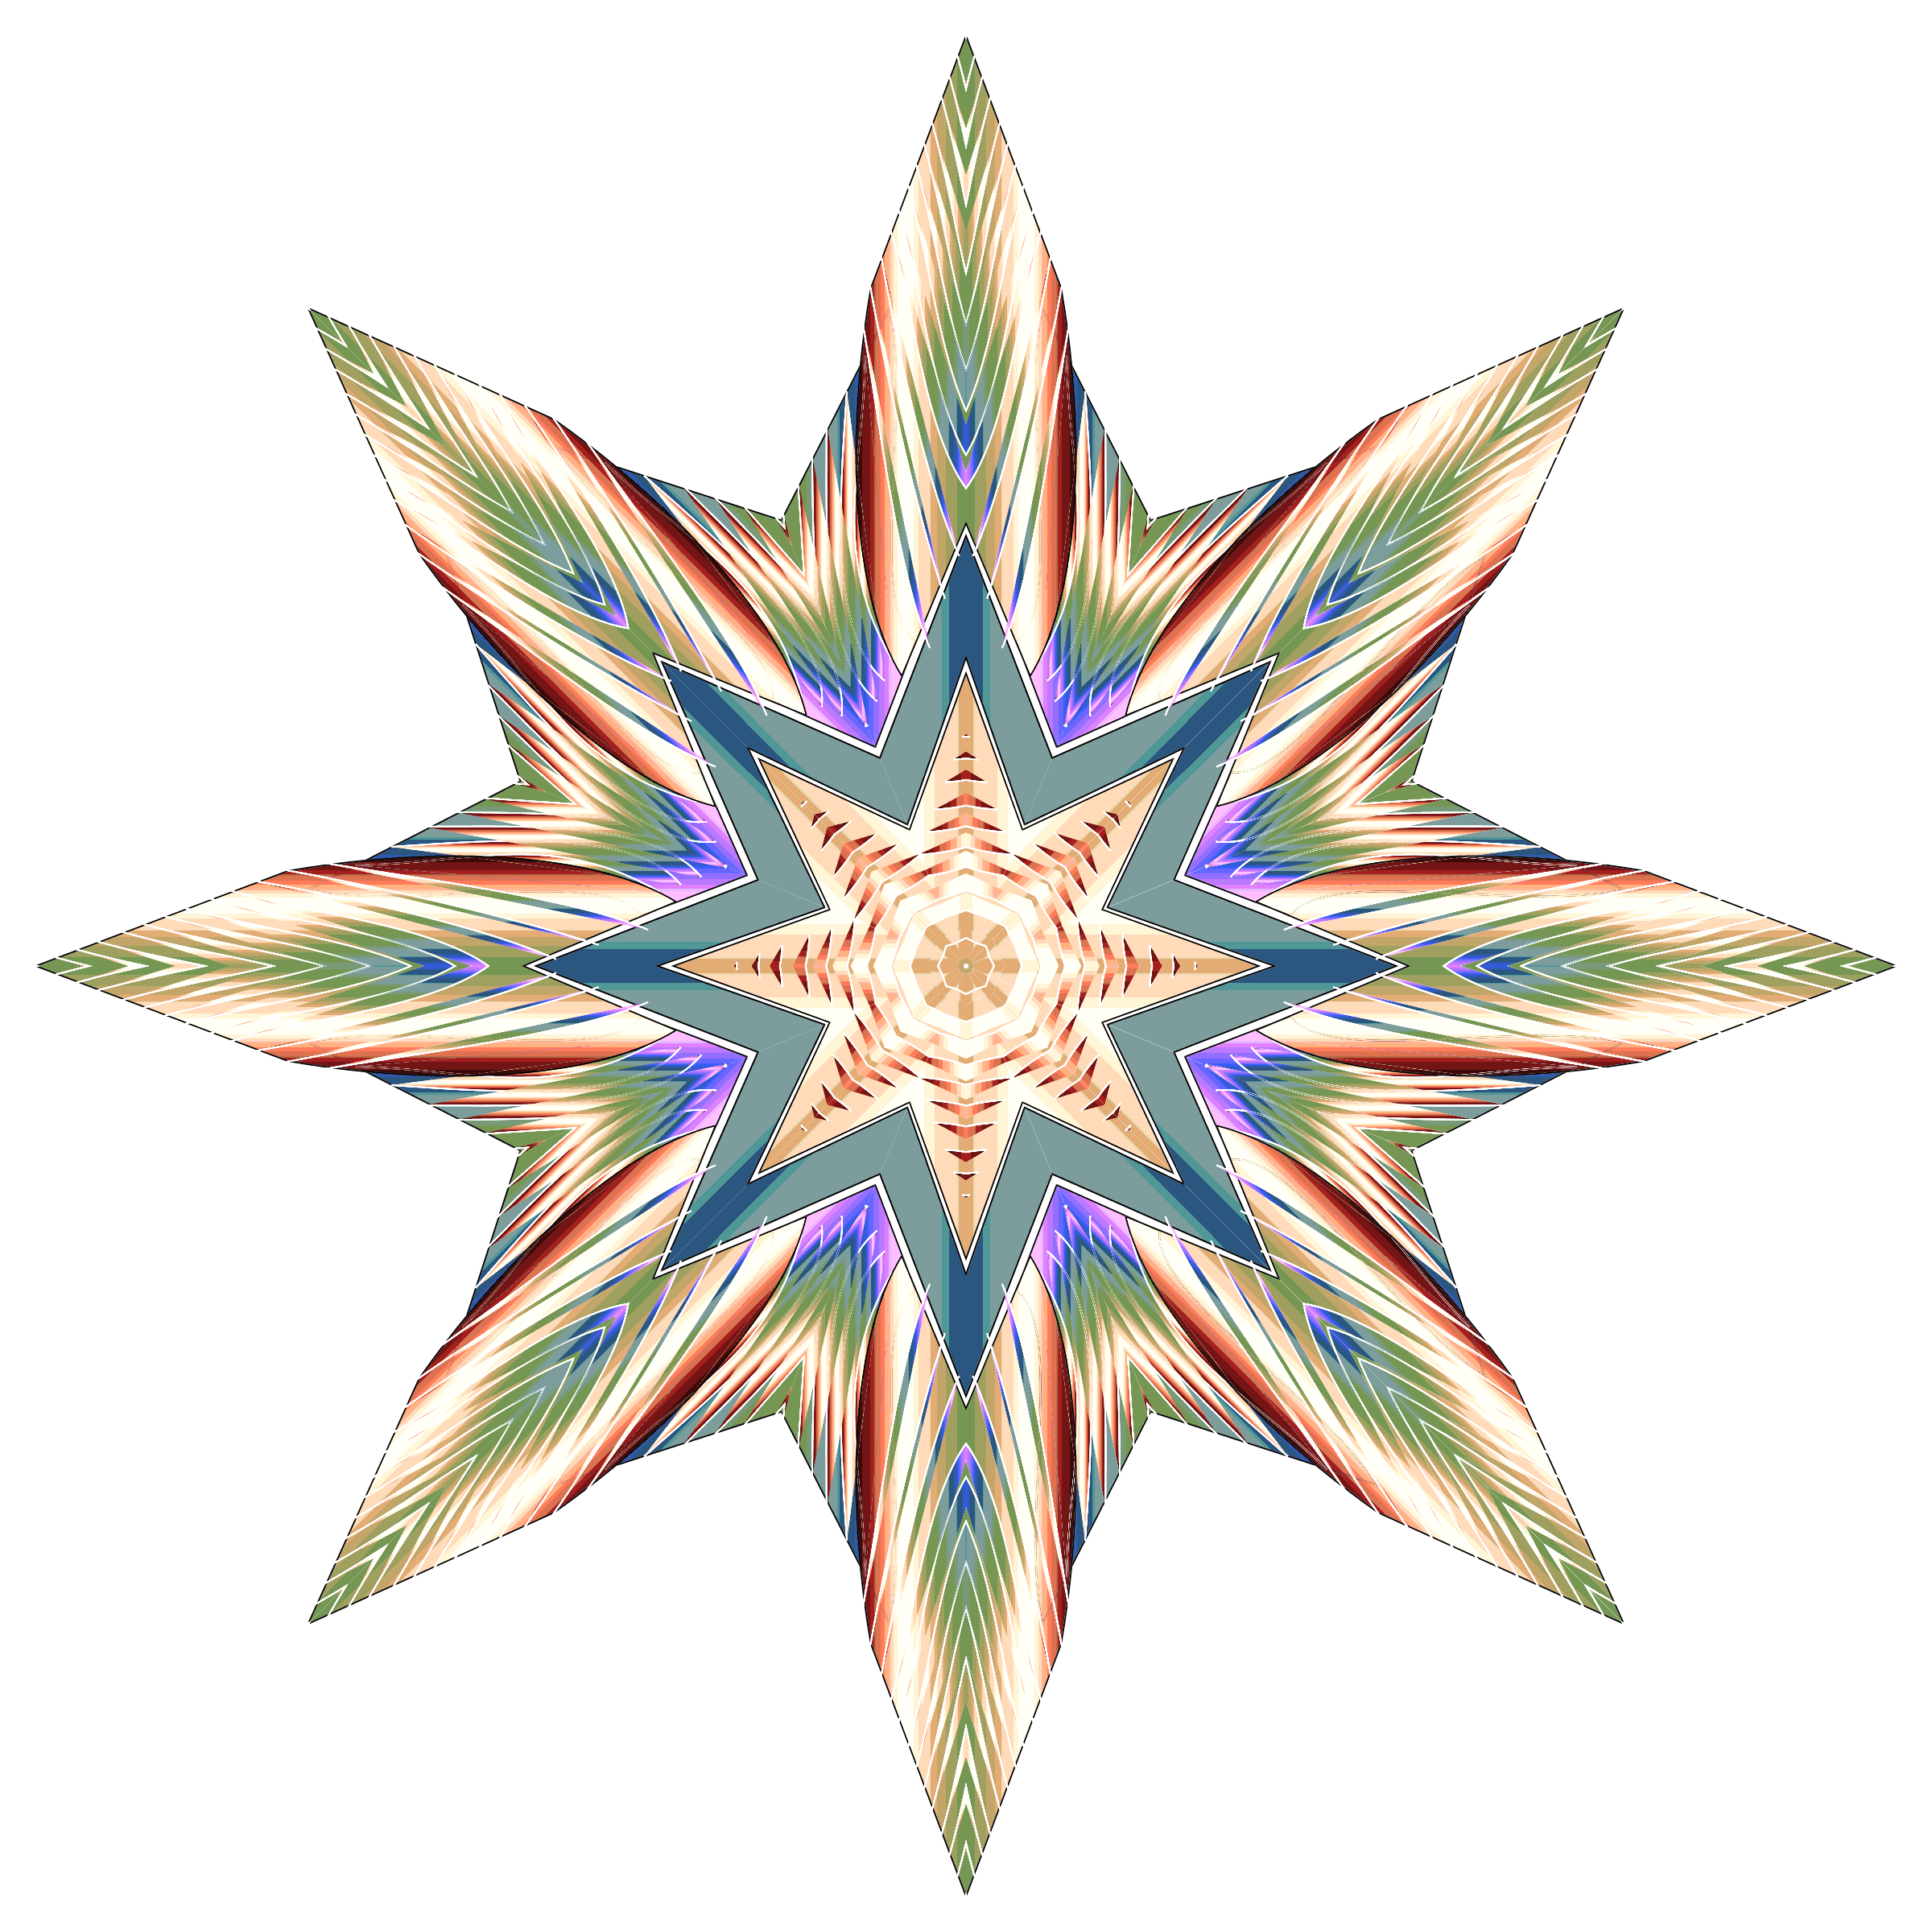 Ornate Star Variation 2 by GDJ